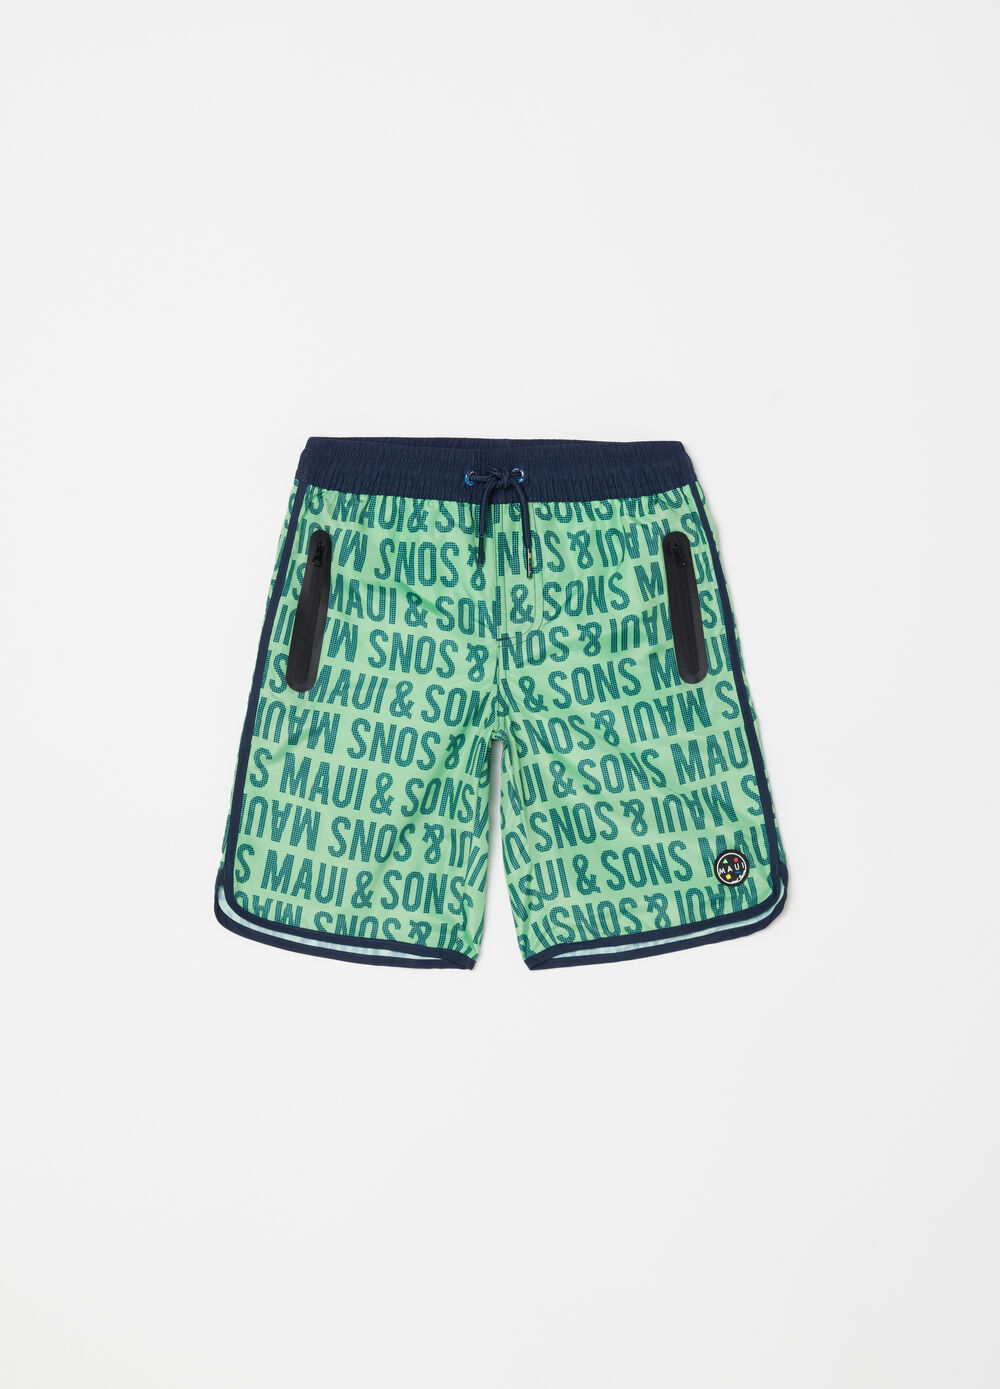 Swim boxer shorts with pockets by Maui and Sons